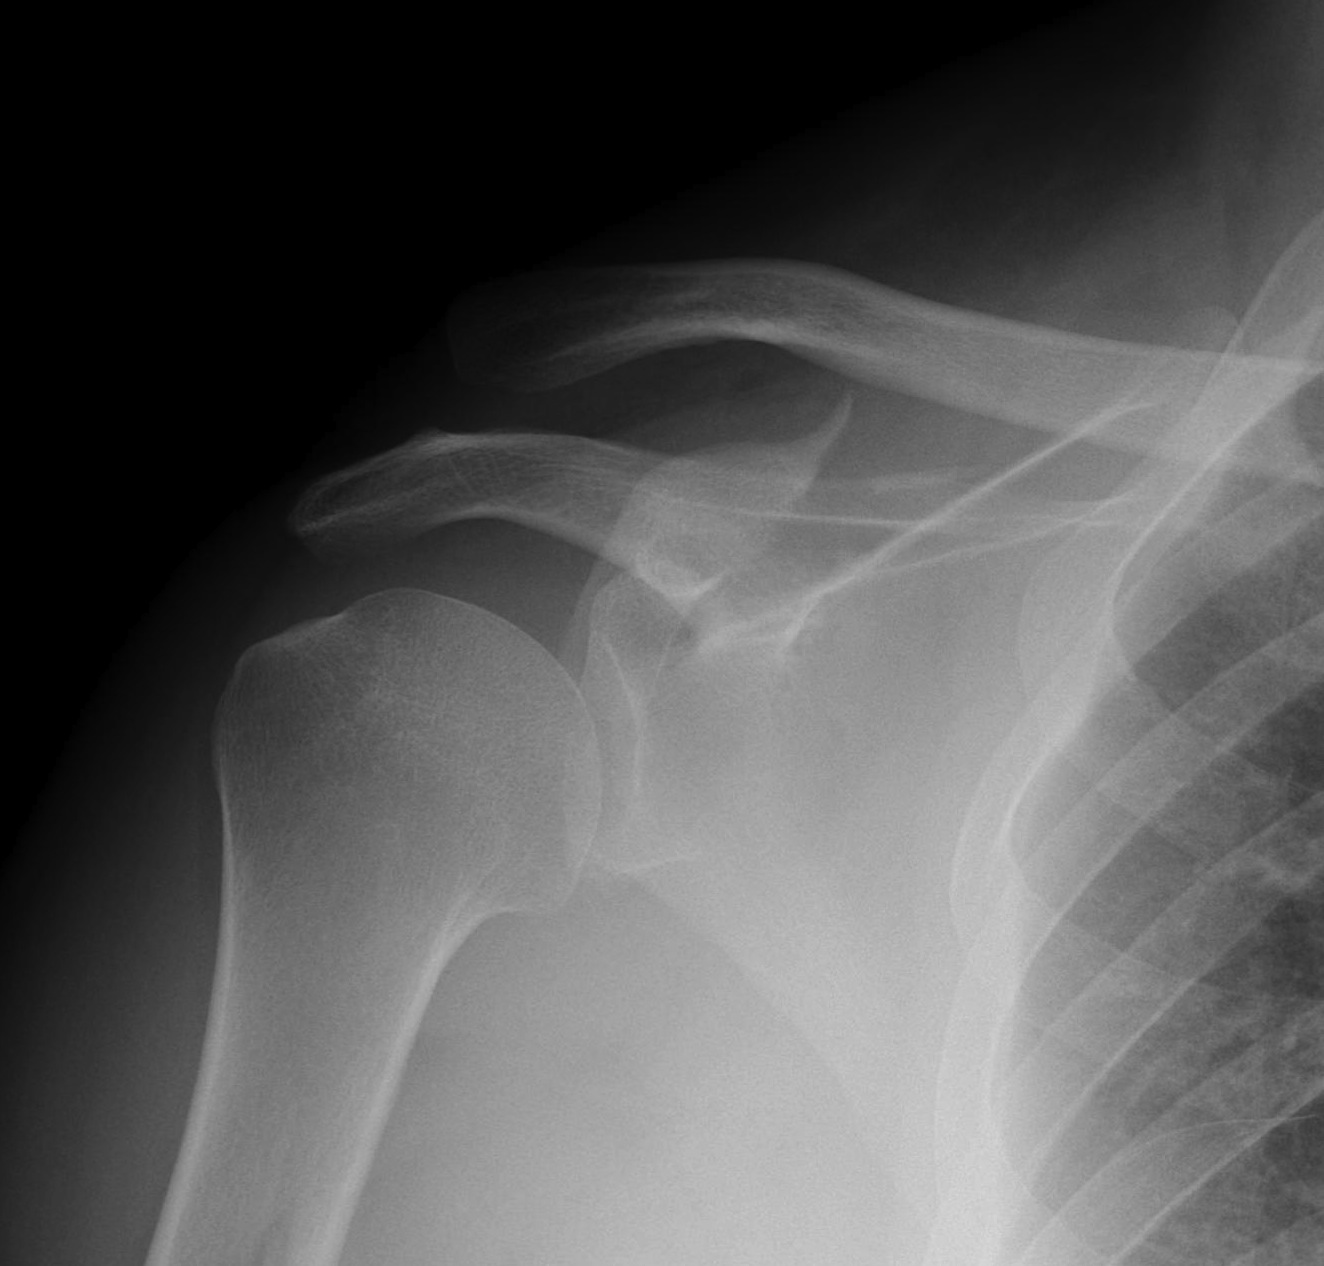 Coracoid Fracture 1